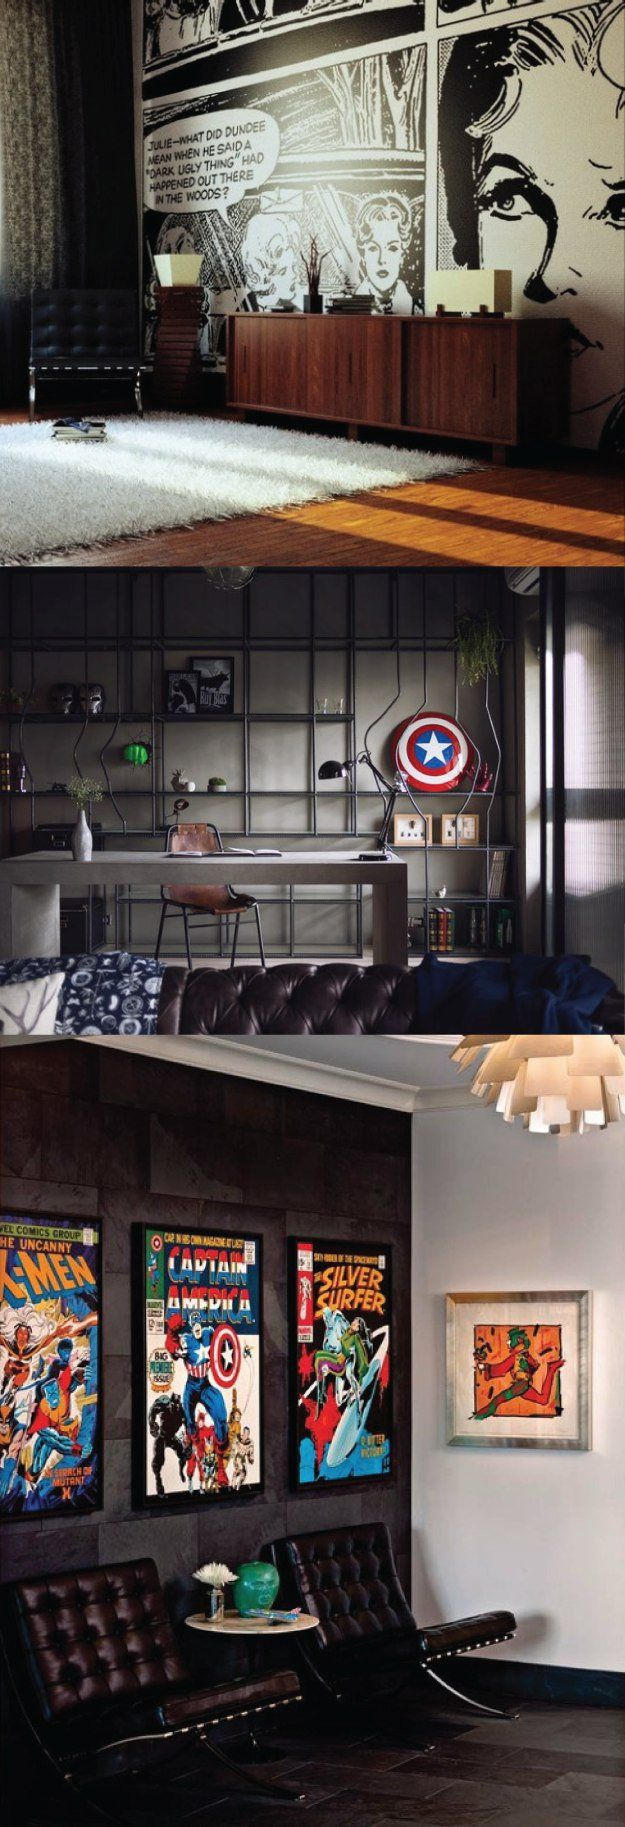 Best man cave installation ideas 23 - Masculine Interior Design Inspired By Comic Books Cool Man Cave Ideas Mehr